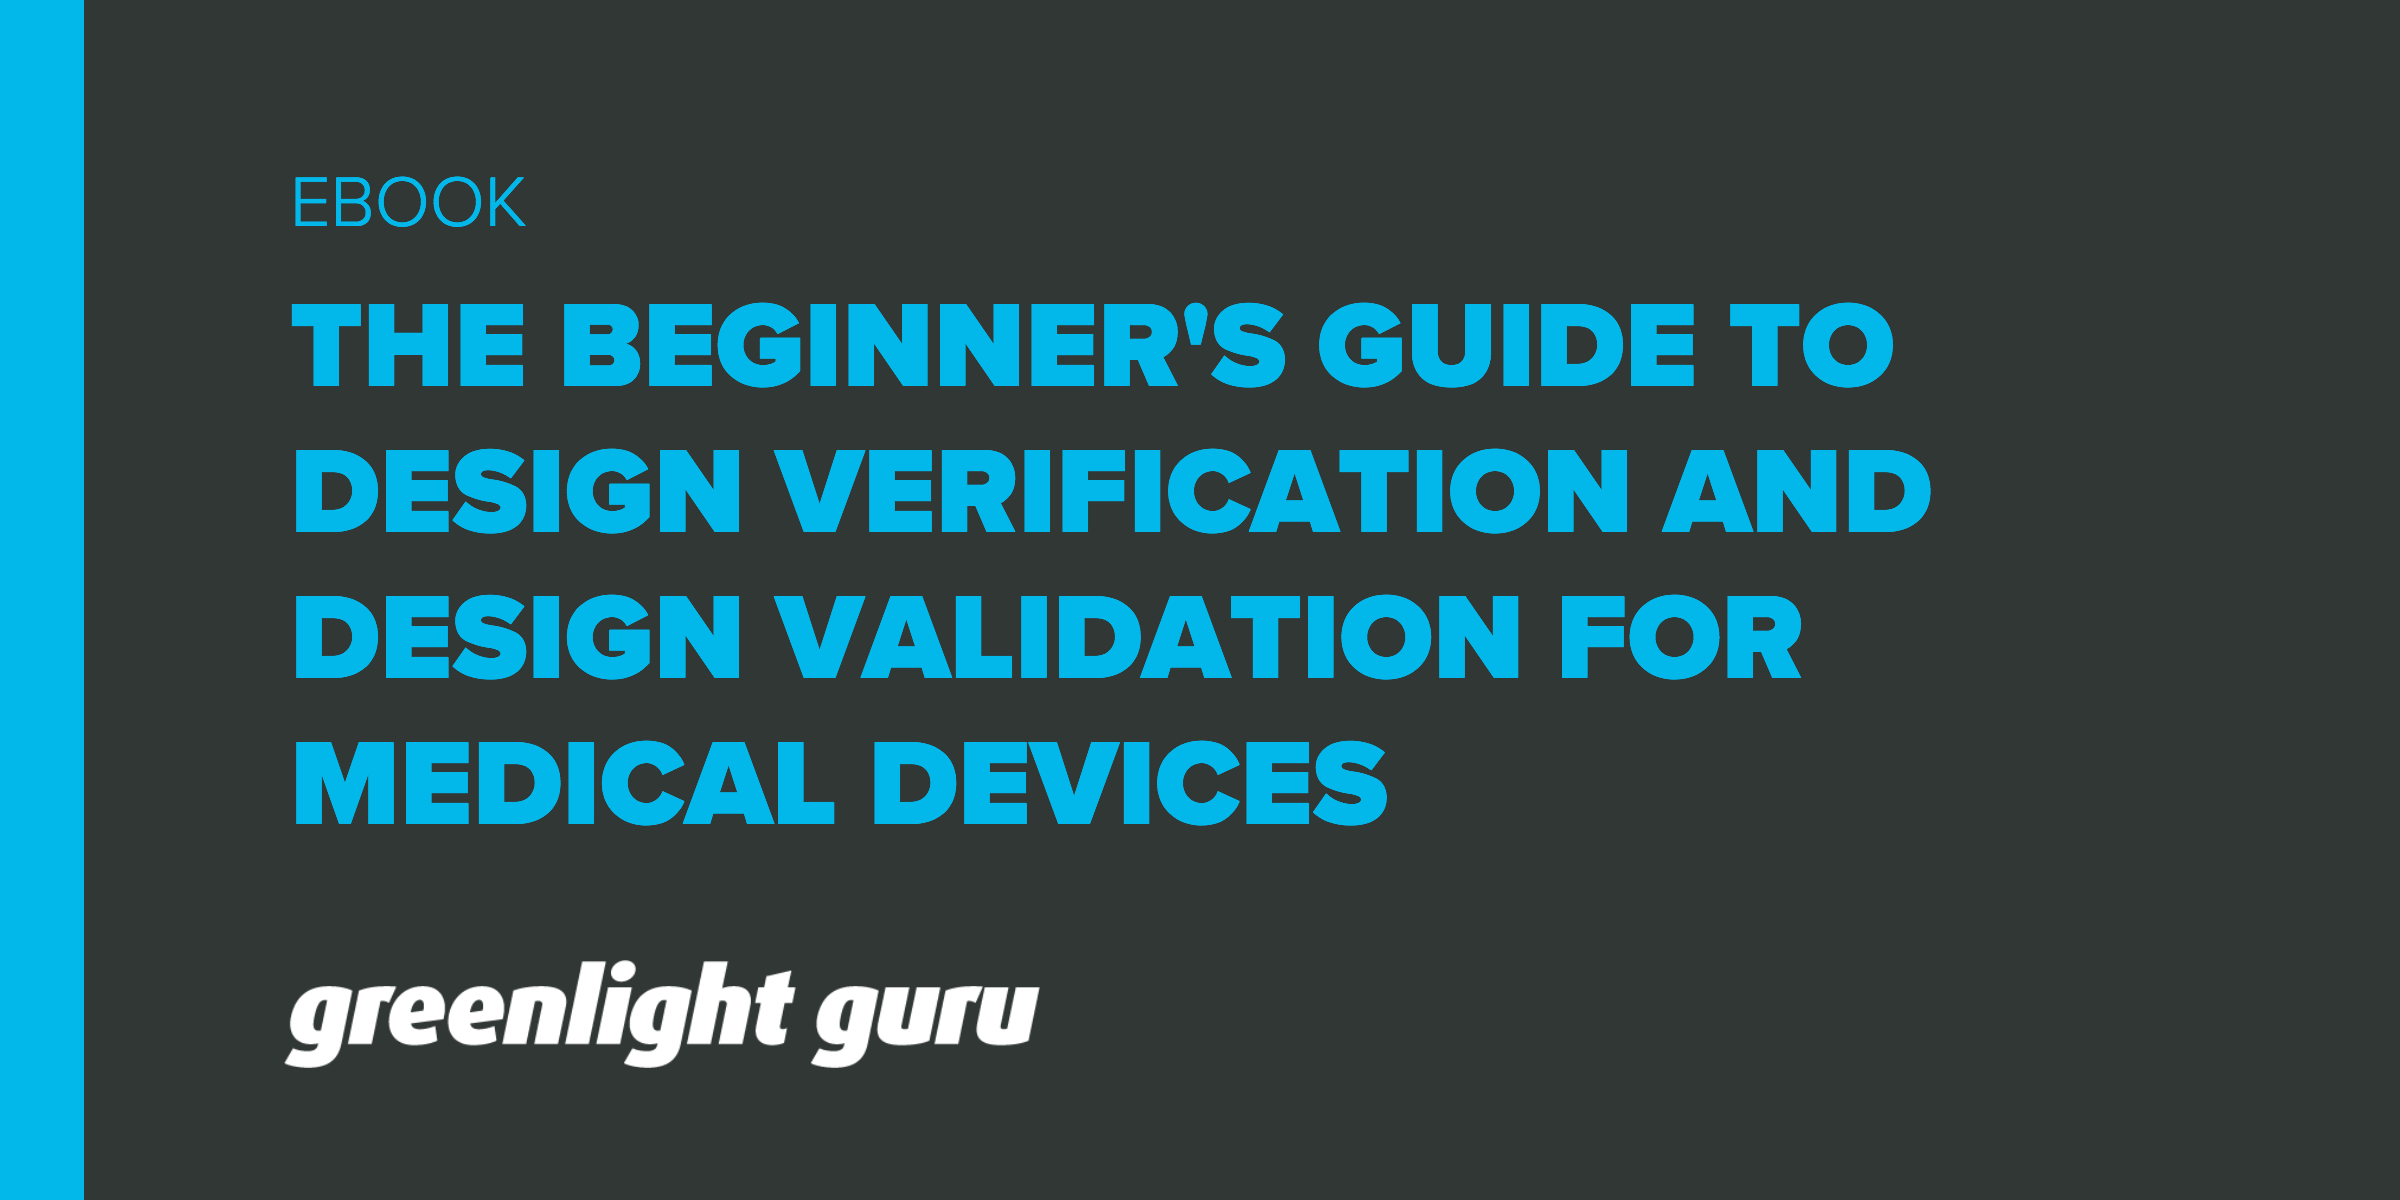 guide-to-design-verification-and-validation